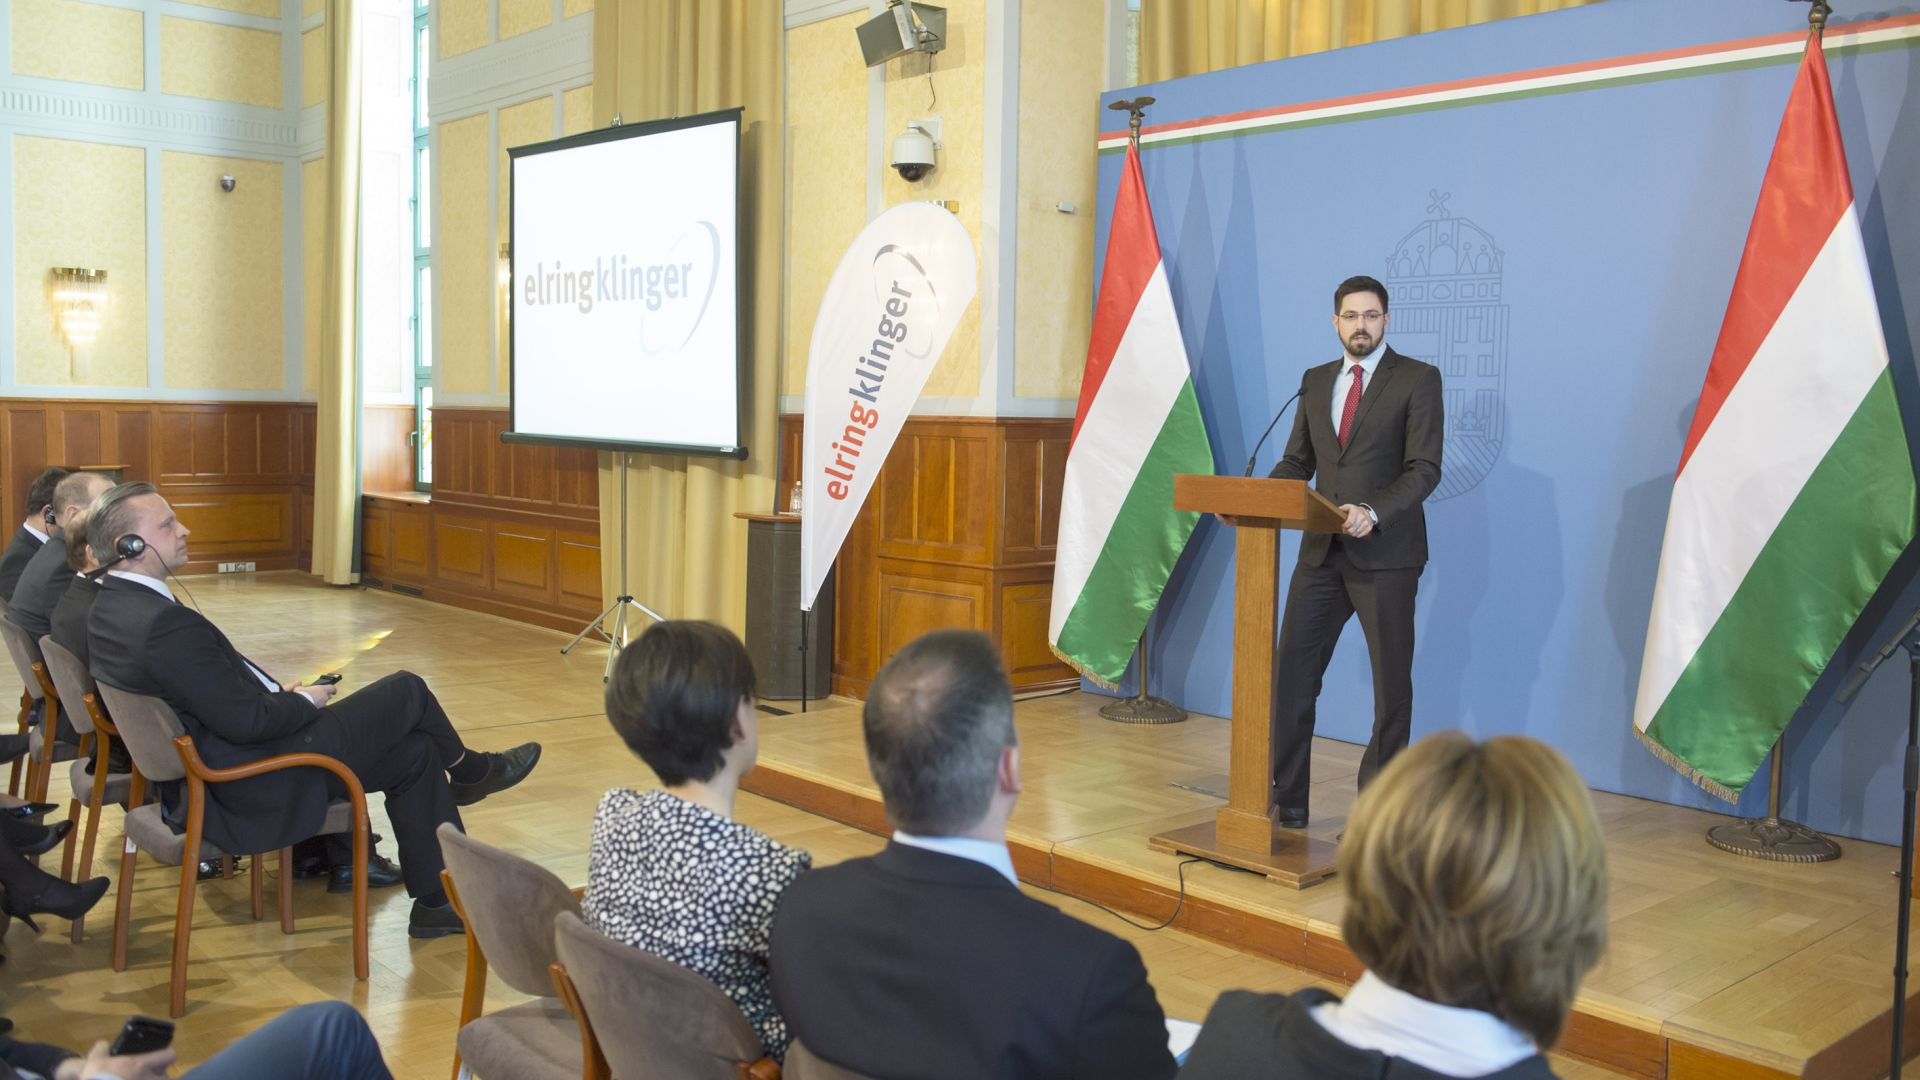 Another leading automotive supplier comes to Kecskemét